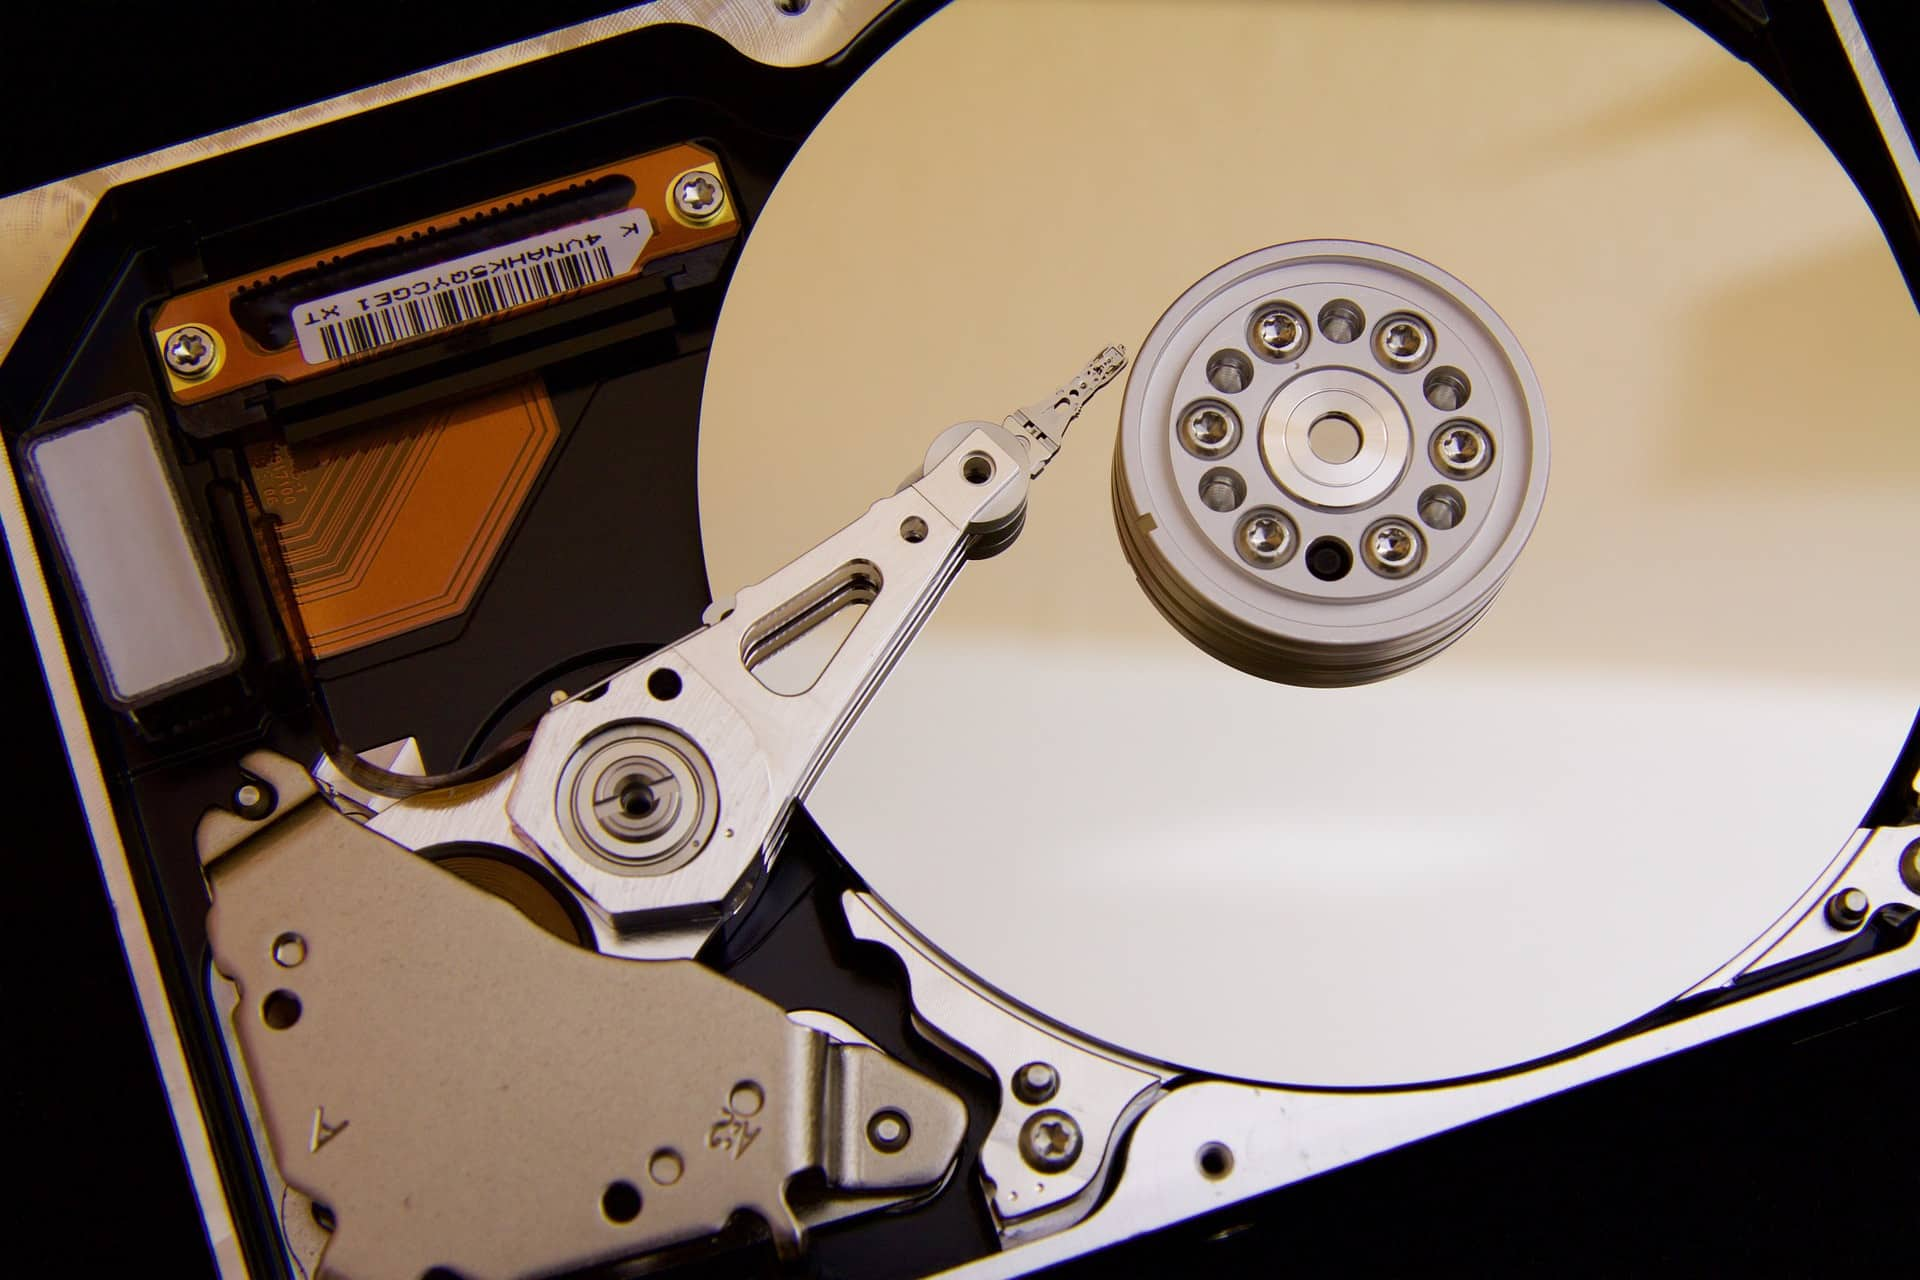 Data Recovery For Recently Mistakenly Deleted Files In NYC